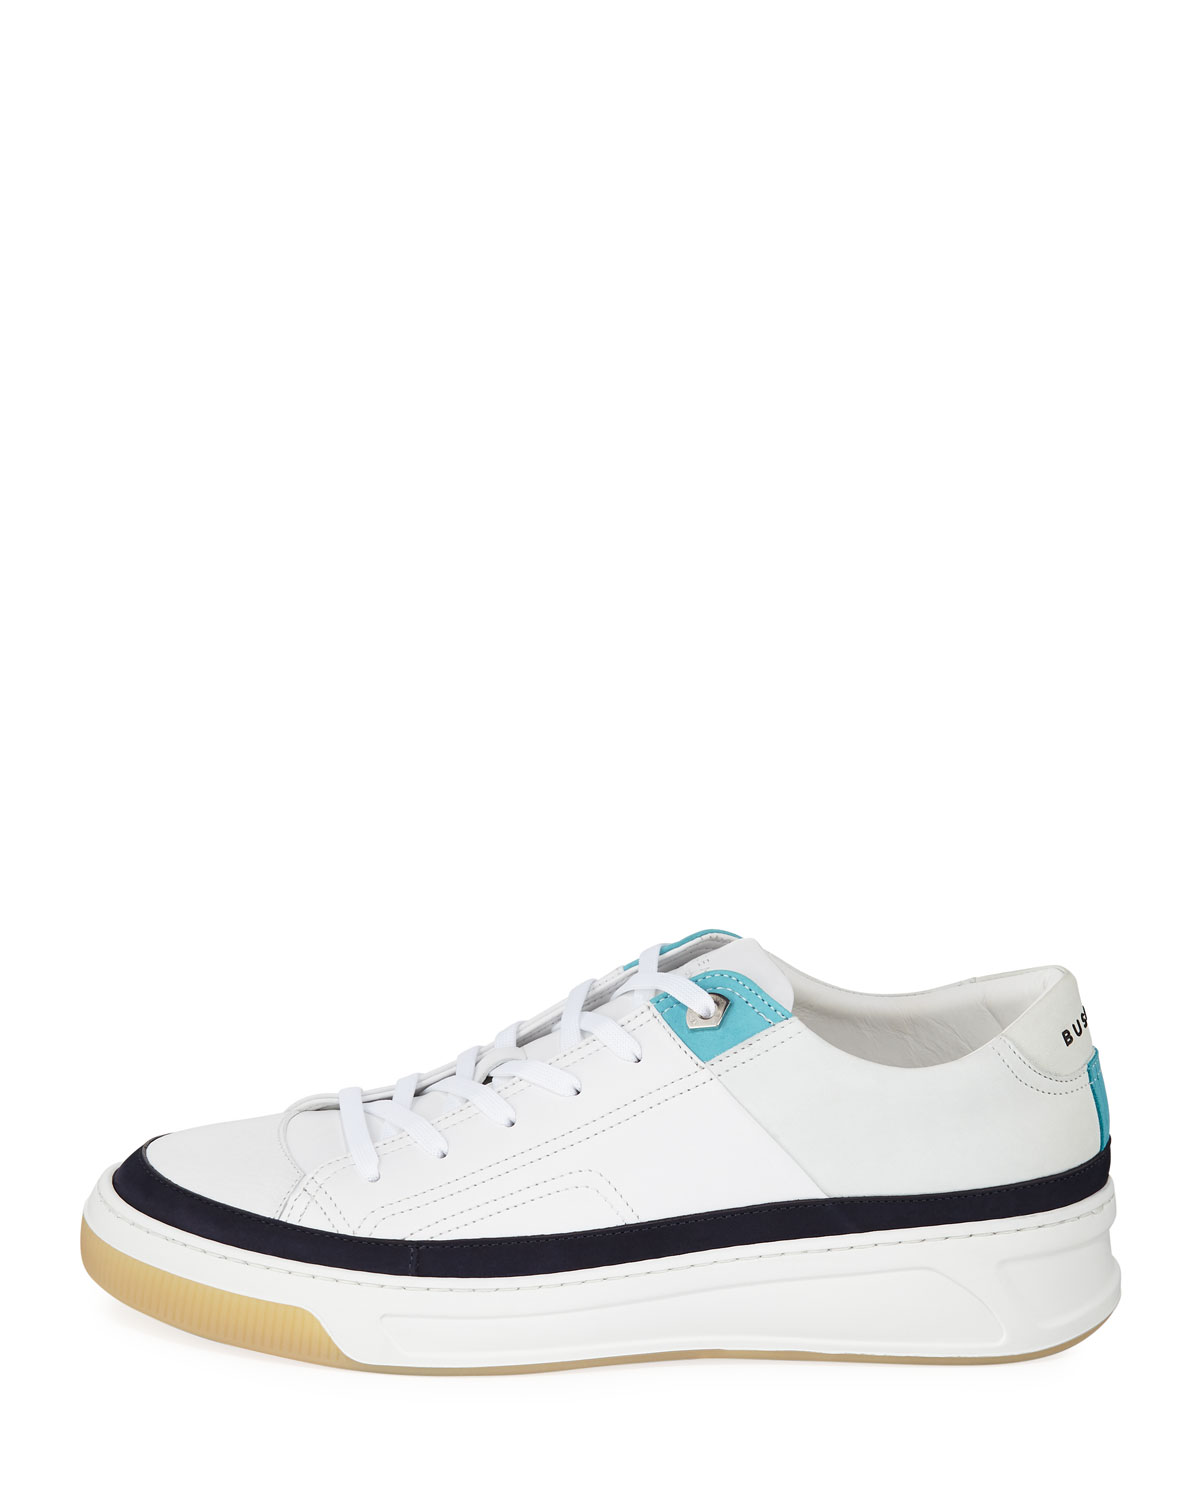 Sneakers Up Lace Prodigy Leather Men's 0OwP8XNnZk